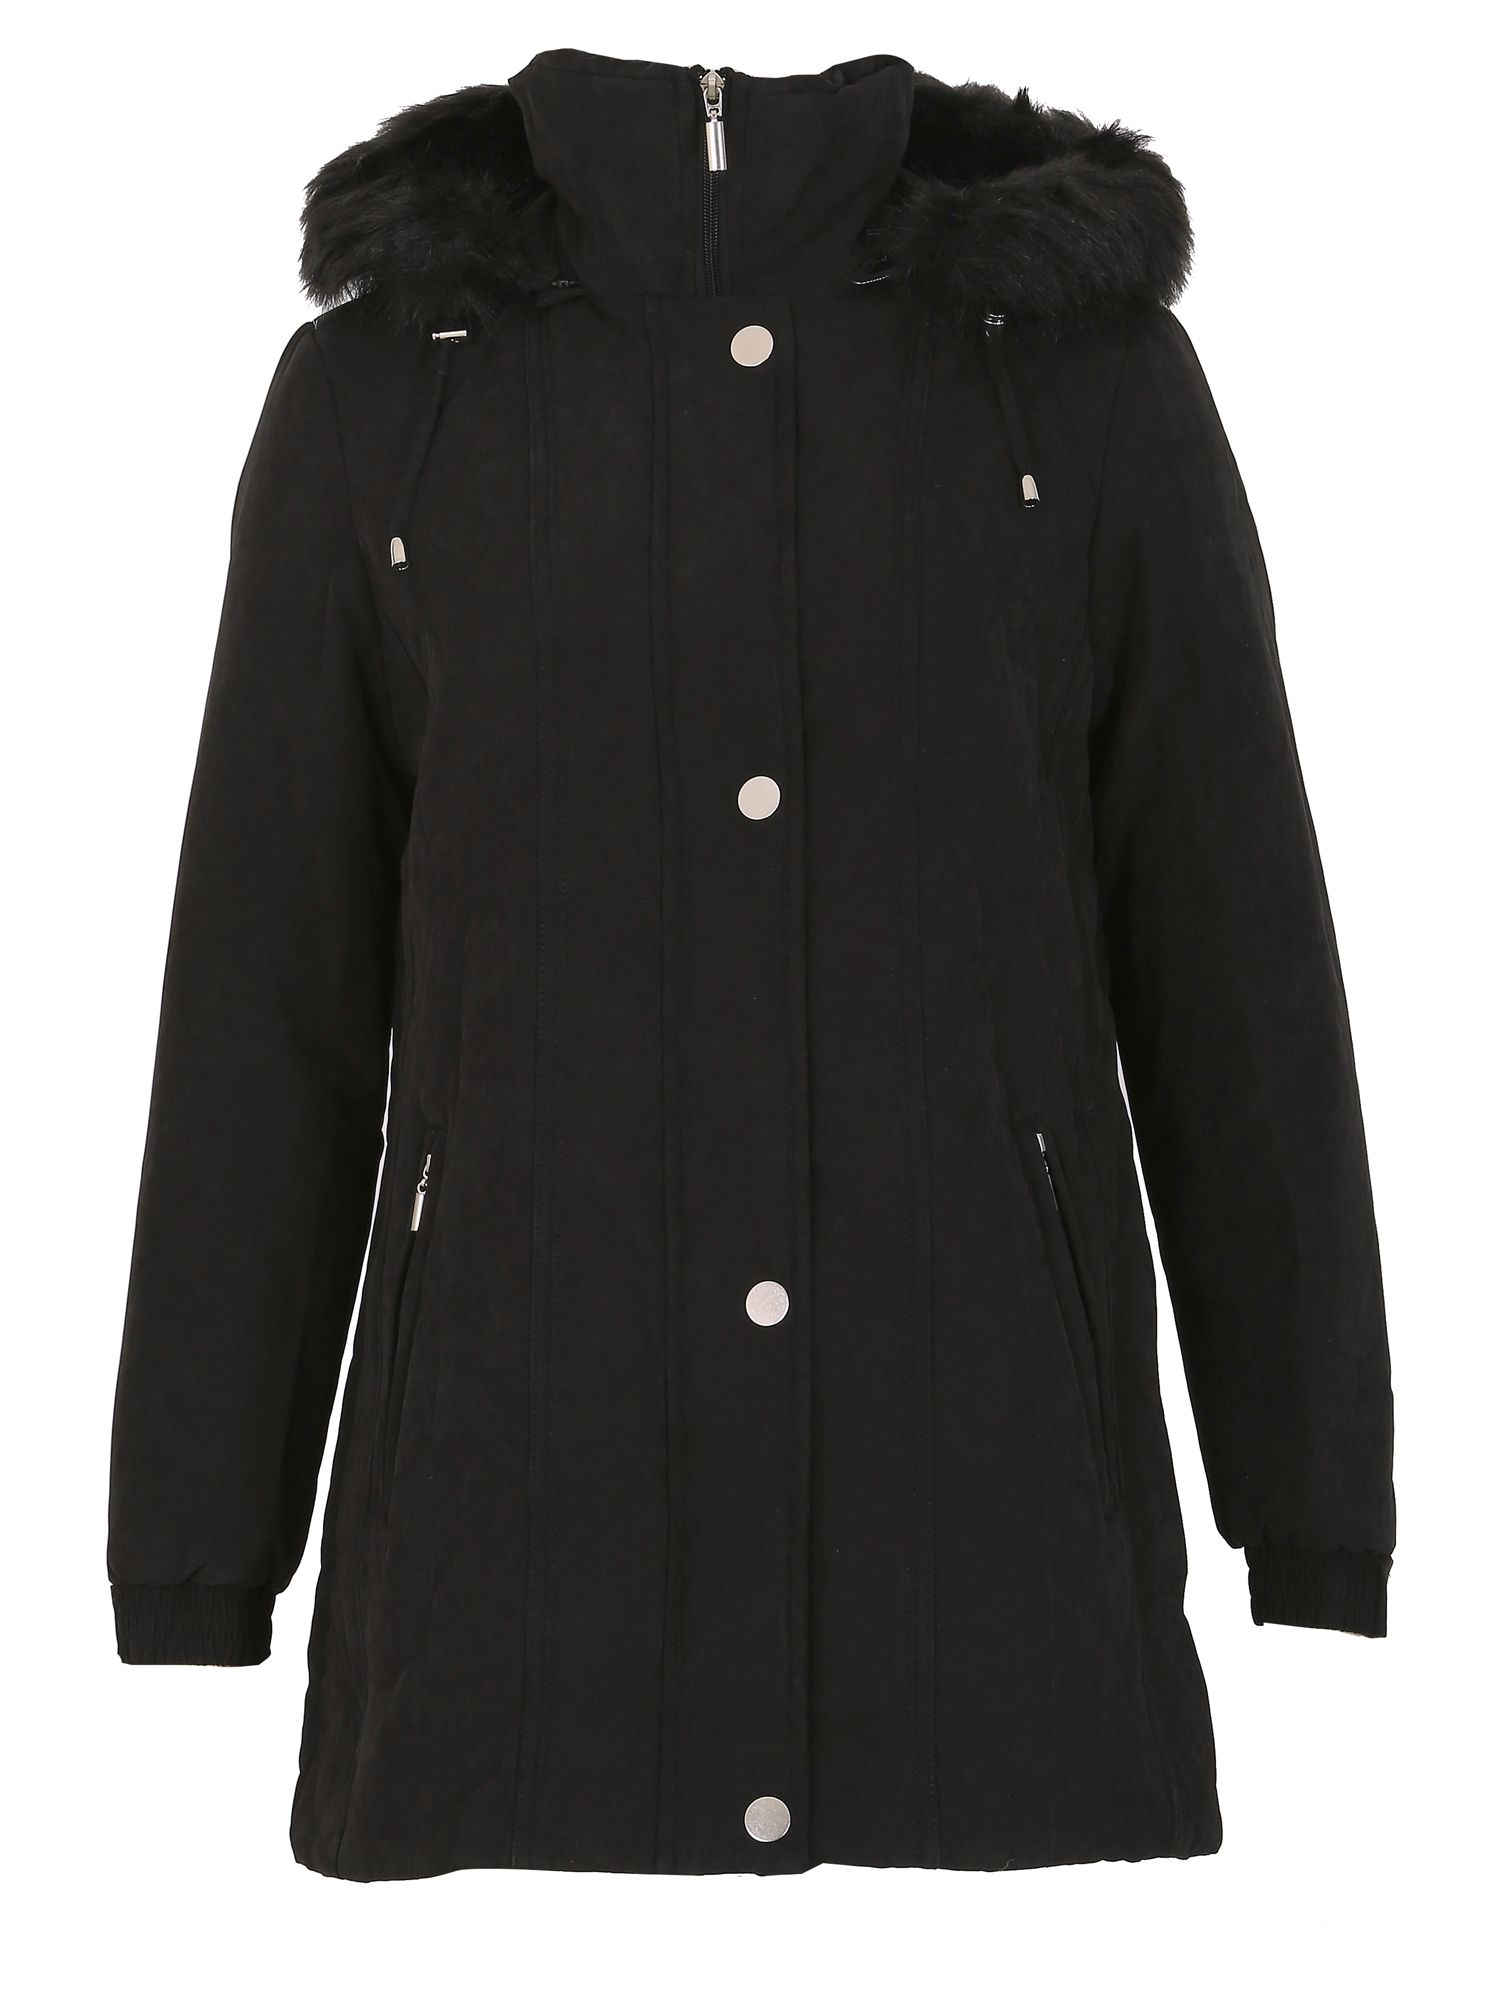 David Barry Mossy Microfibre Jacket, Black